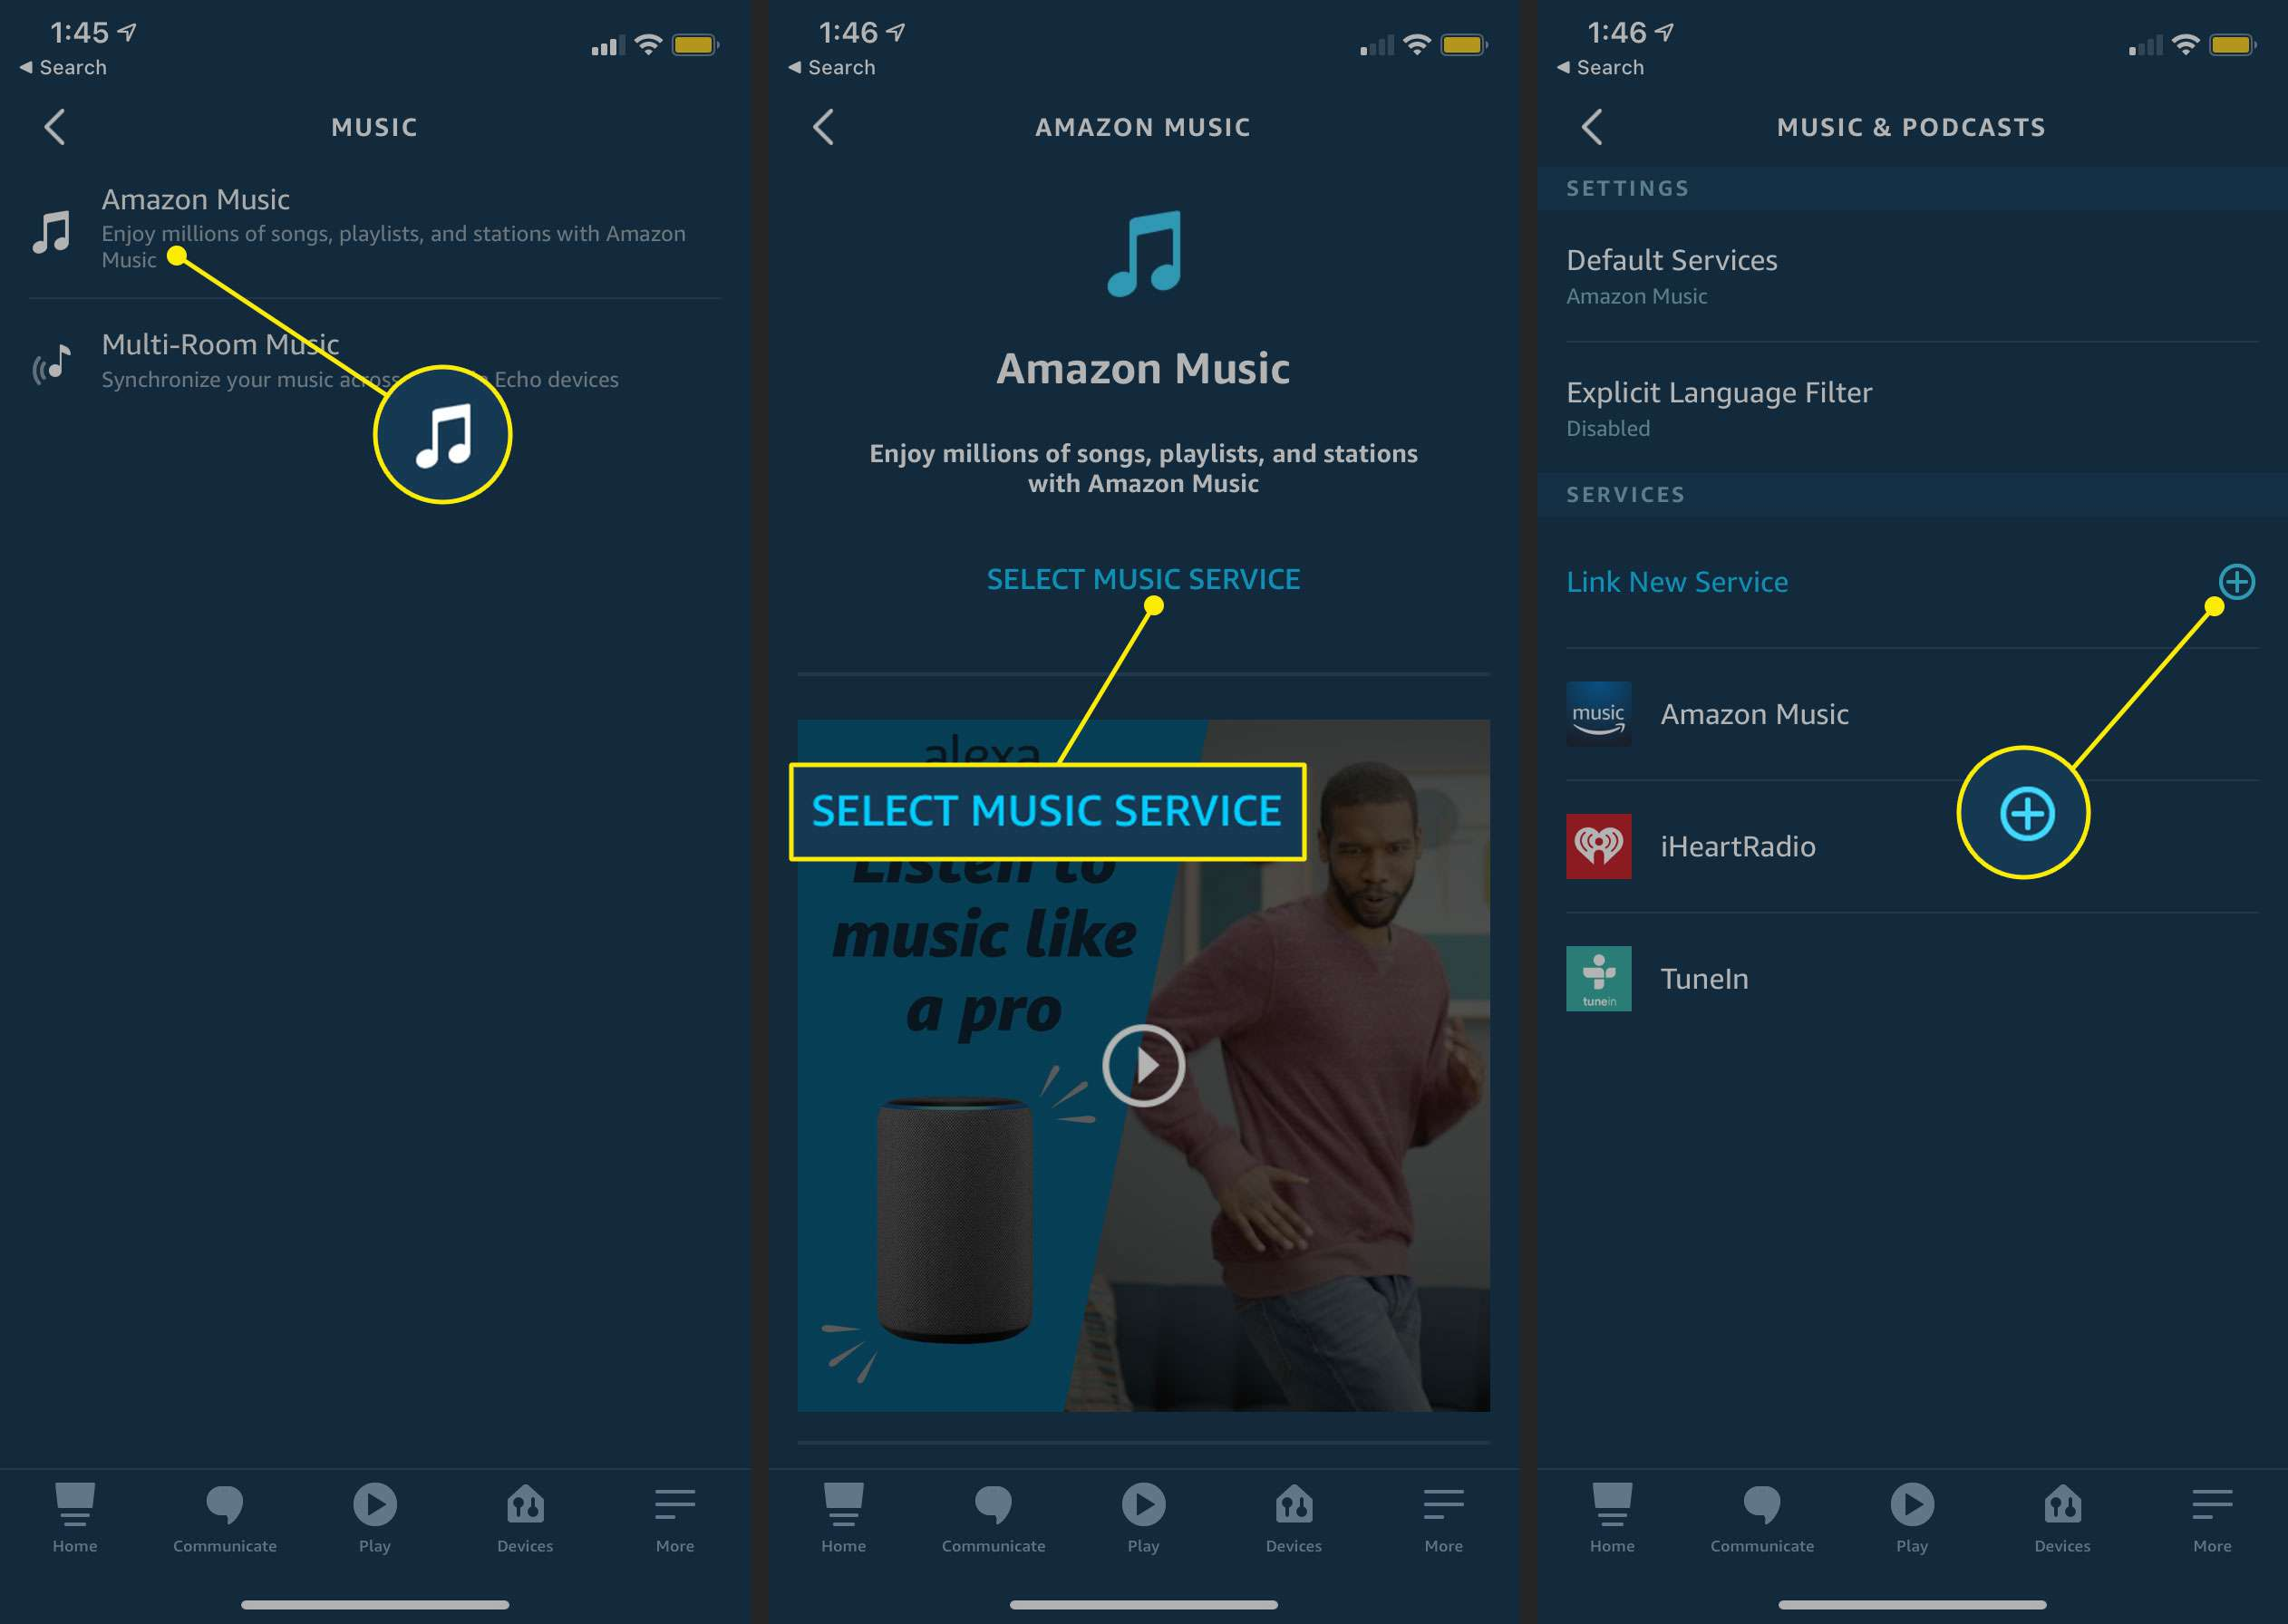 Linking a music service in the Alexa app for iOS